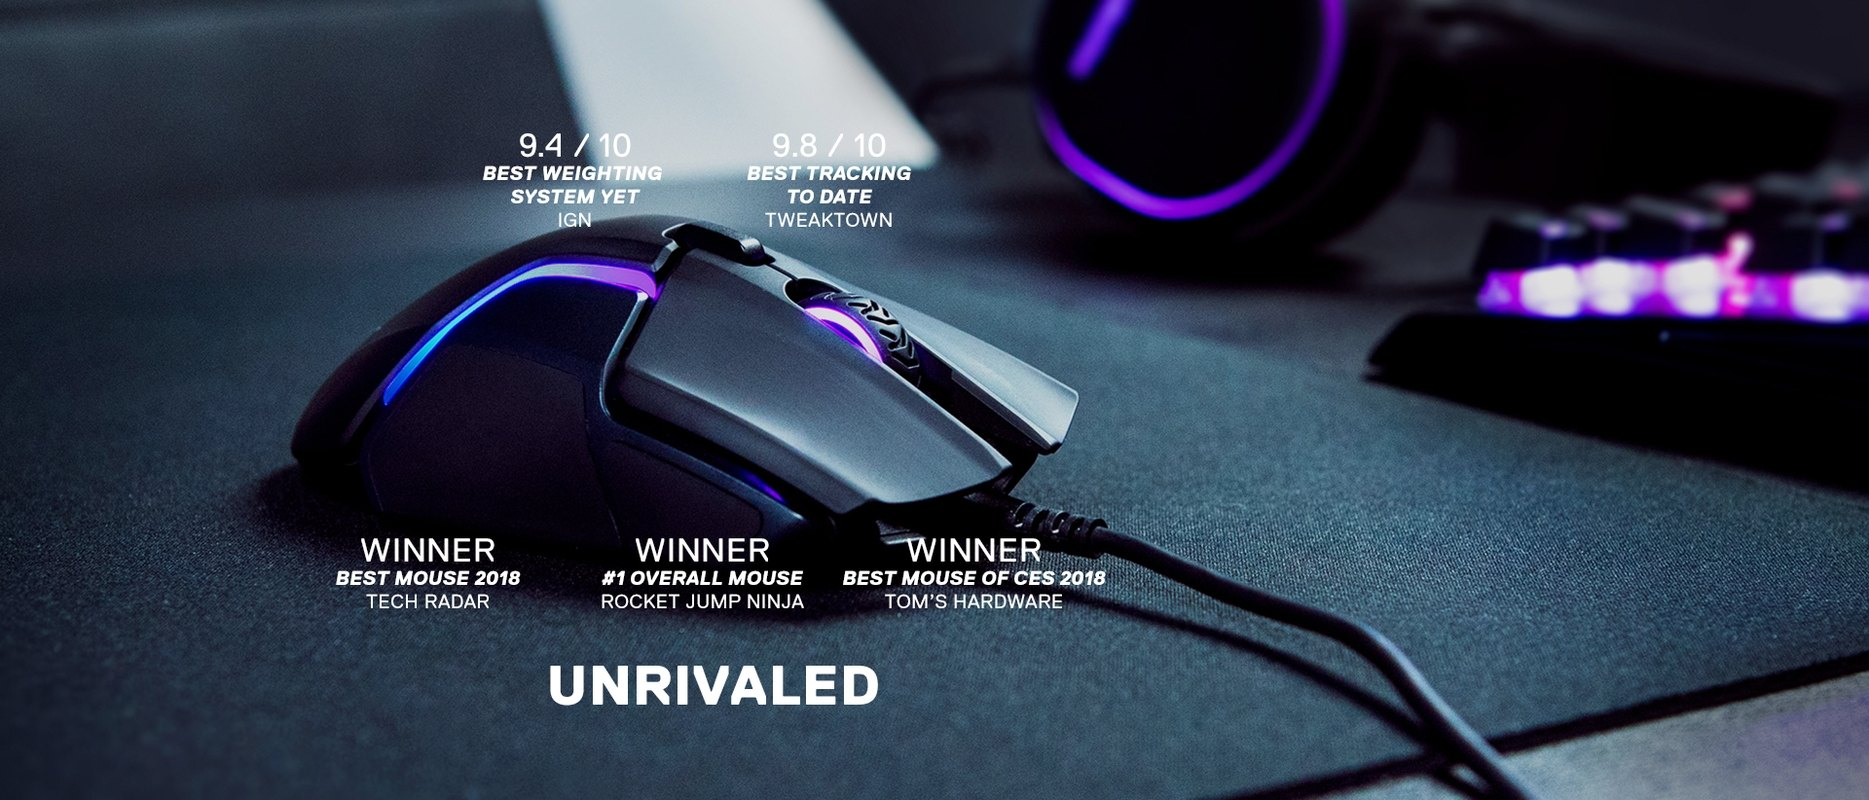 Rival 600 gaming mouse with awards